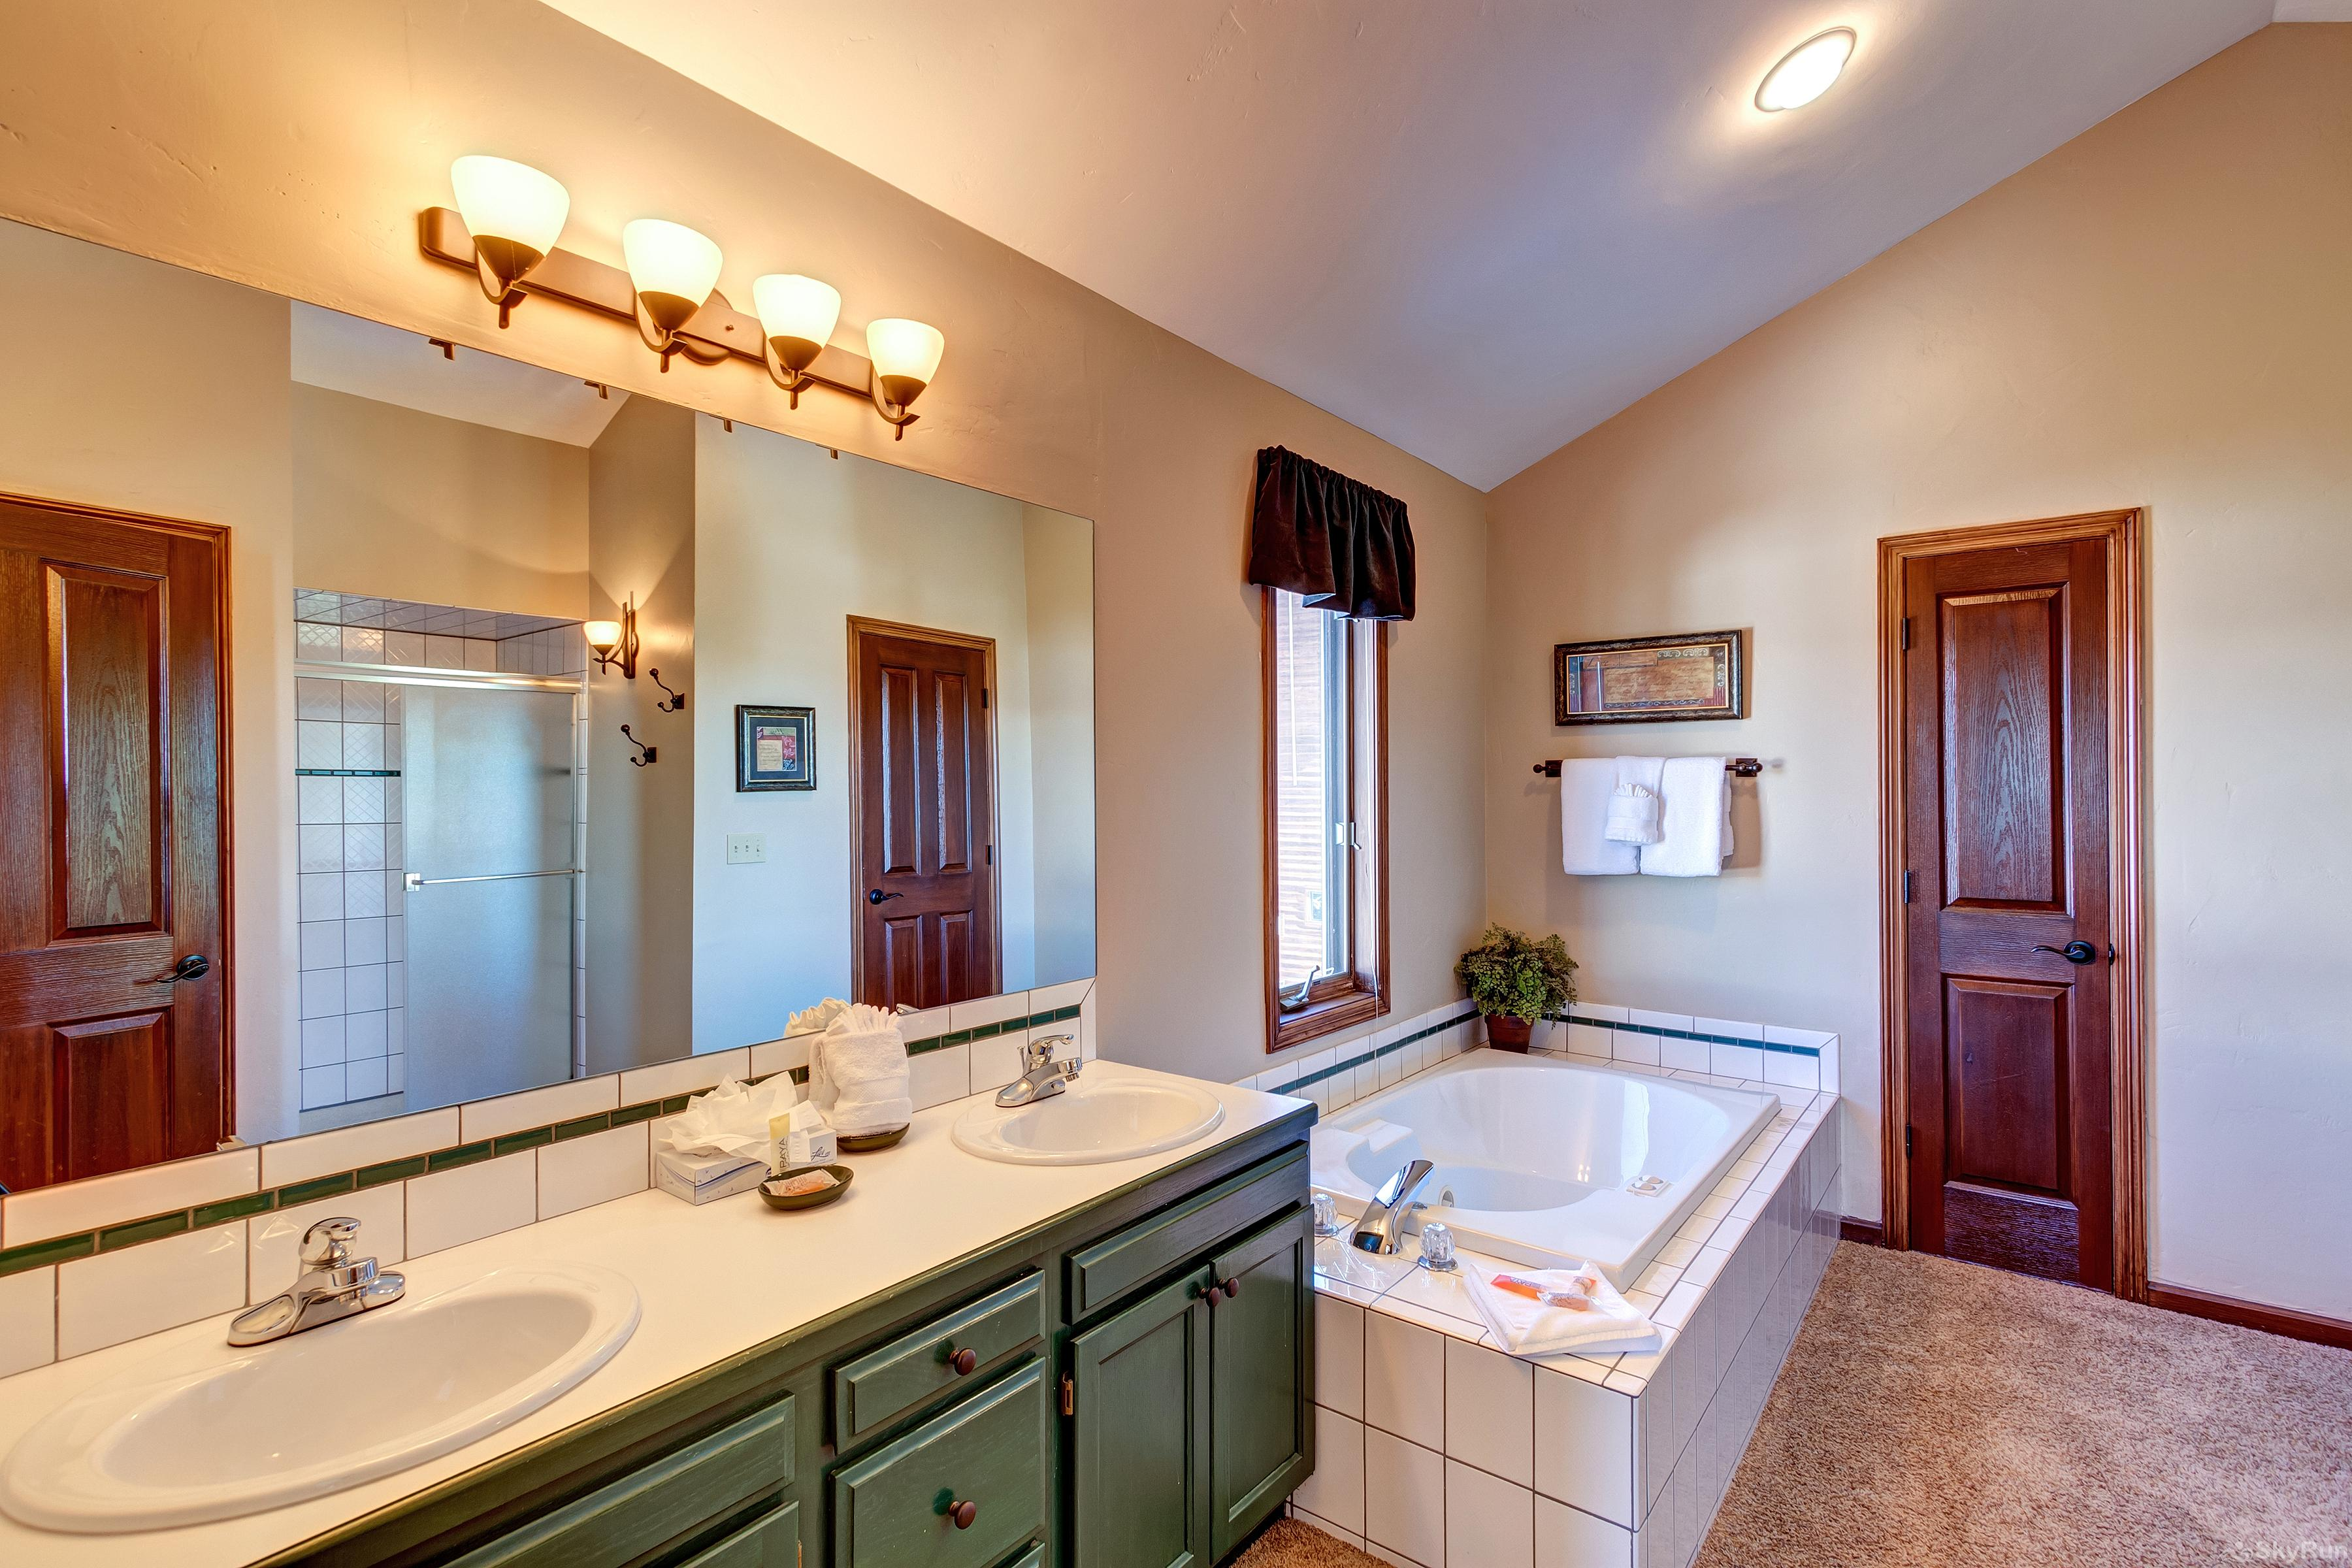 Grande Vista Master bedroom 5-piece ensuite bathroom